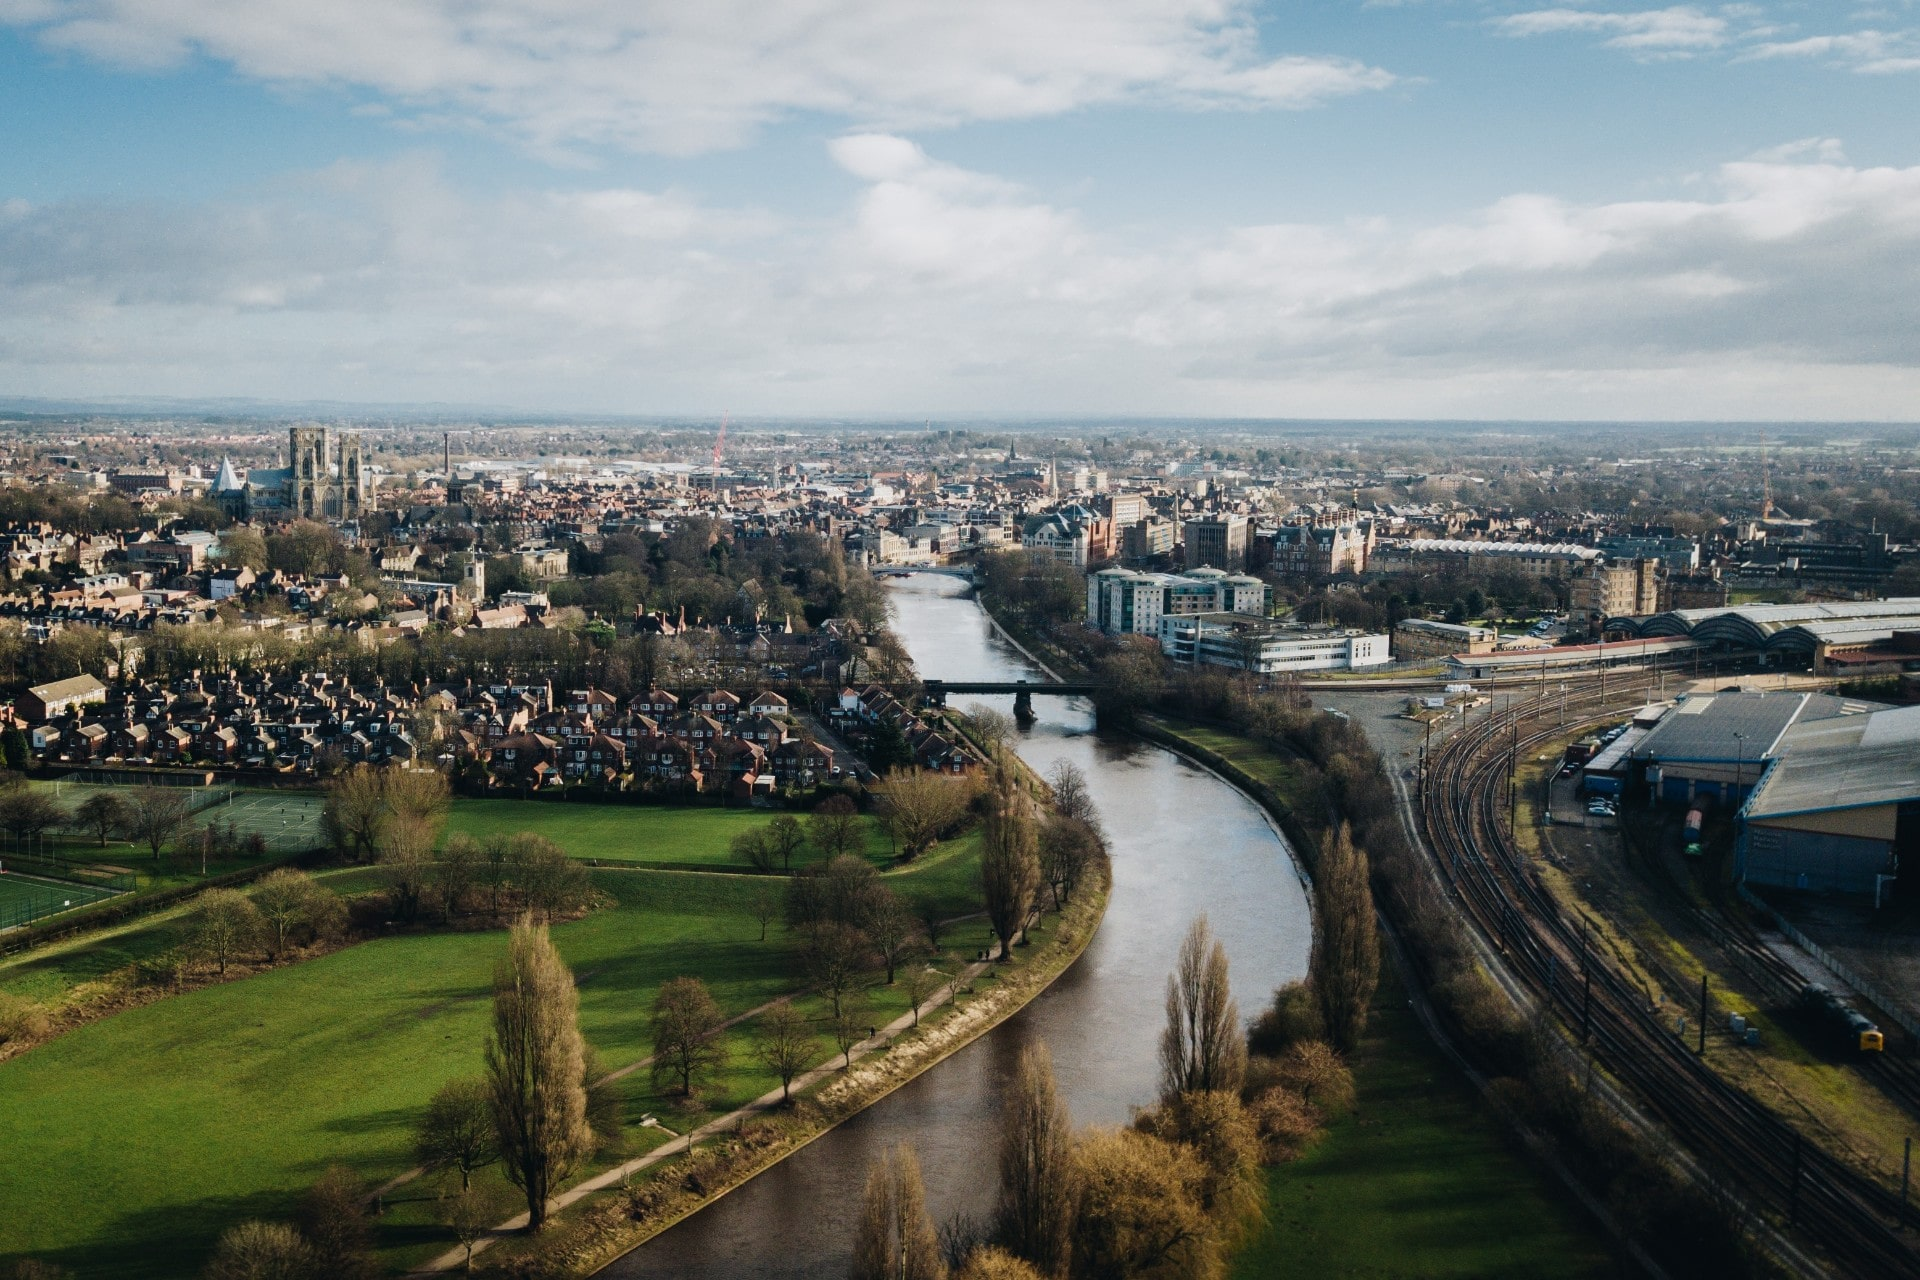 aerial-view-of-york-city-uk-winding-river